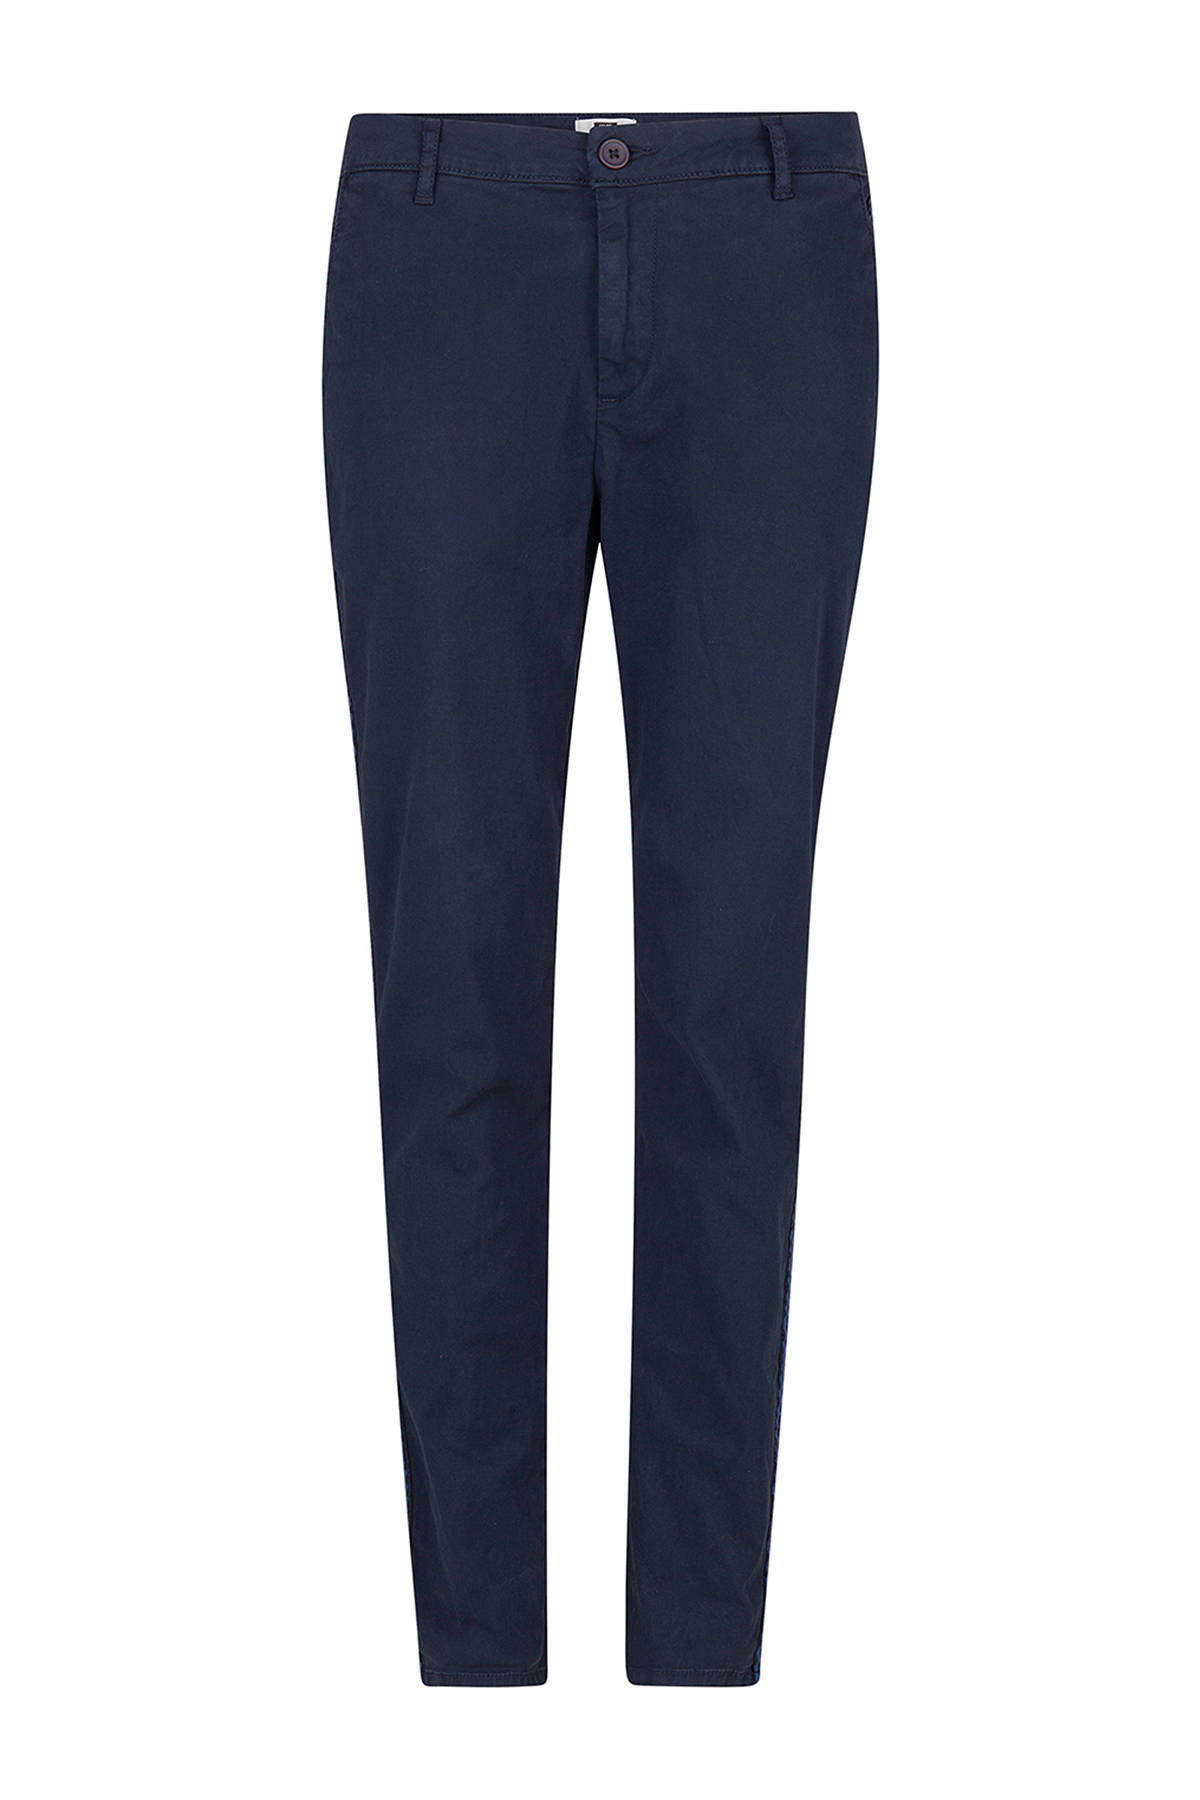 Luna relaxed fit chino donkerblauw